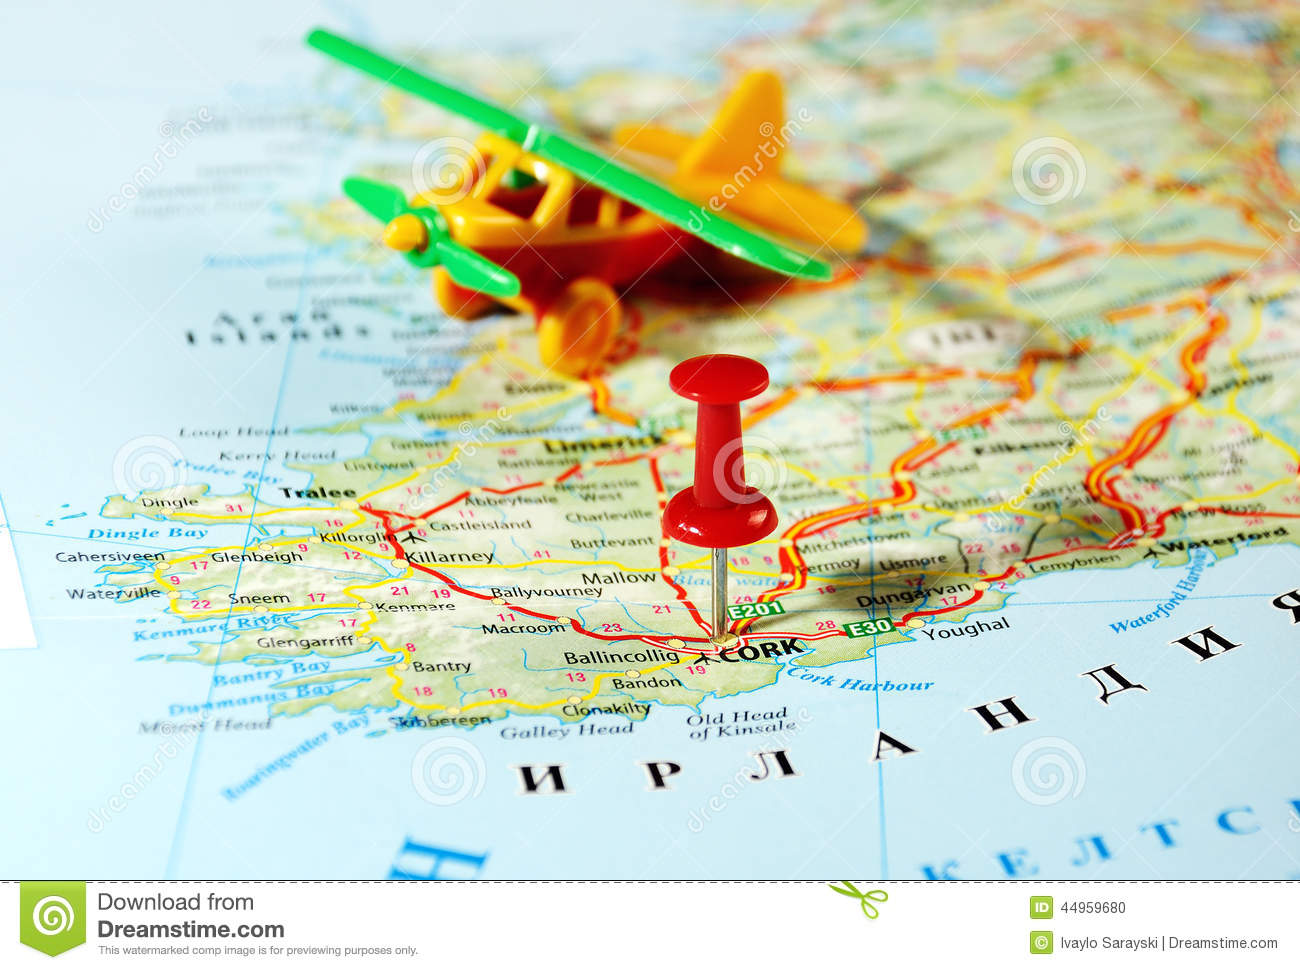 Cork Ireland United Kingdom Map Airplane Photo Image – Travel Map of Ireland